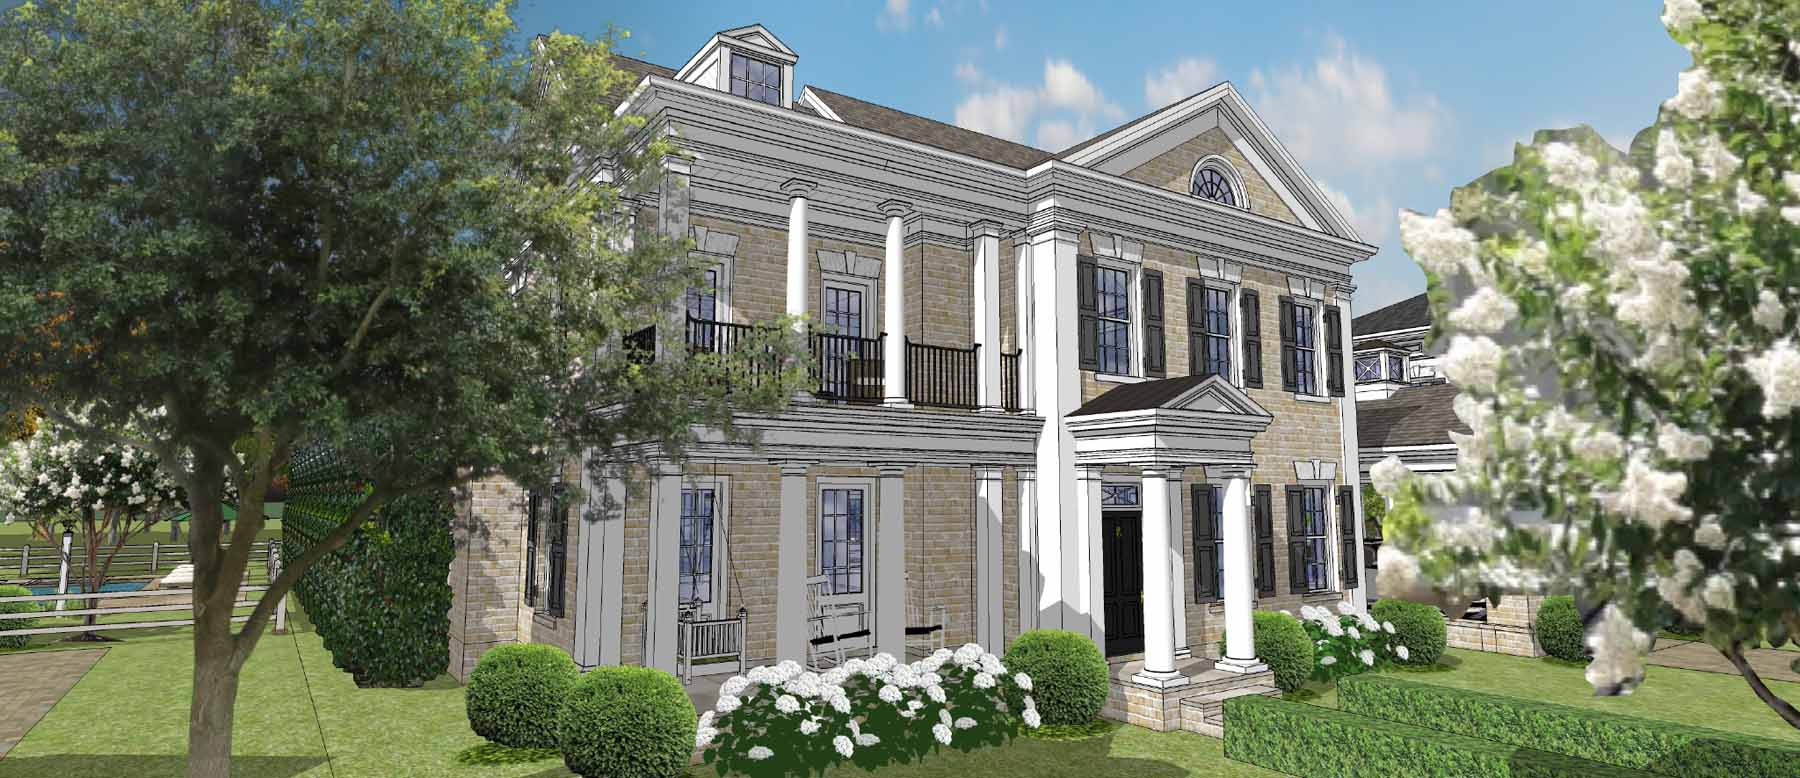 一戸建て のために 売買 アット Premier Custom Built Gated Neighborhood in Downtown Alpharetta 2120 Canton View Alpharetta, ジョージア, 30009 アメリカ合衆国